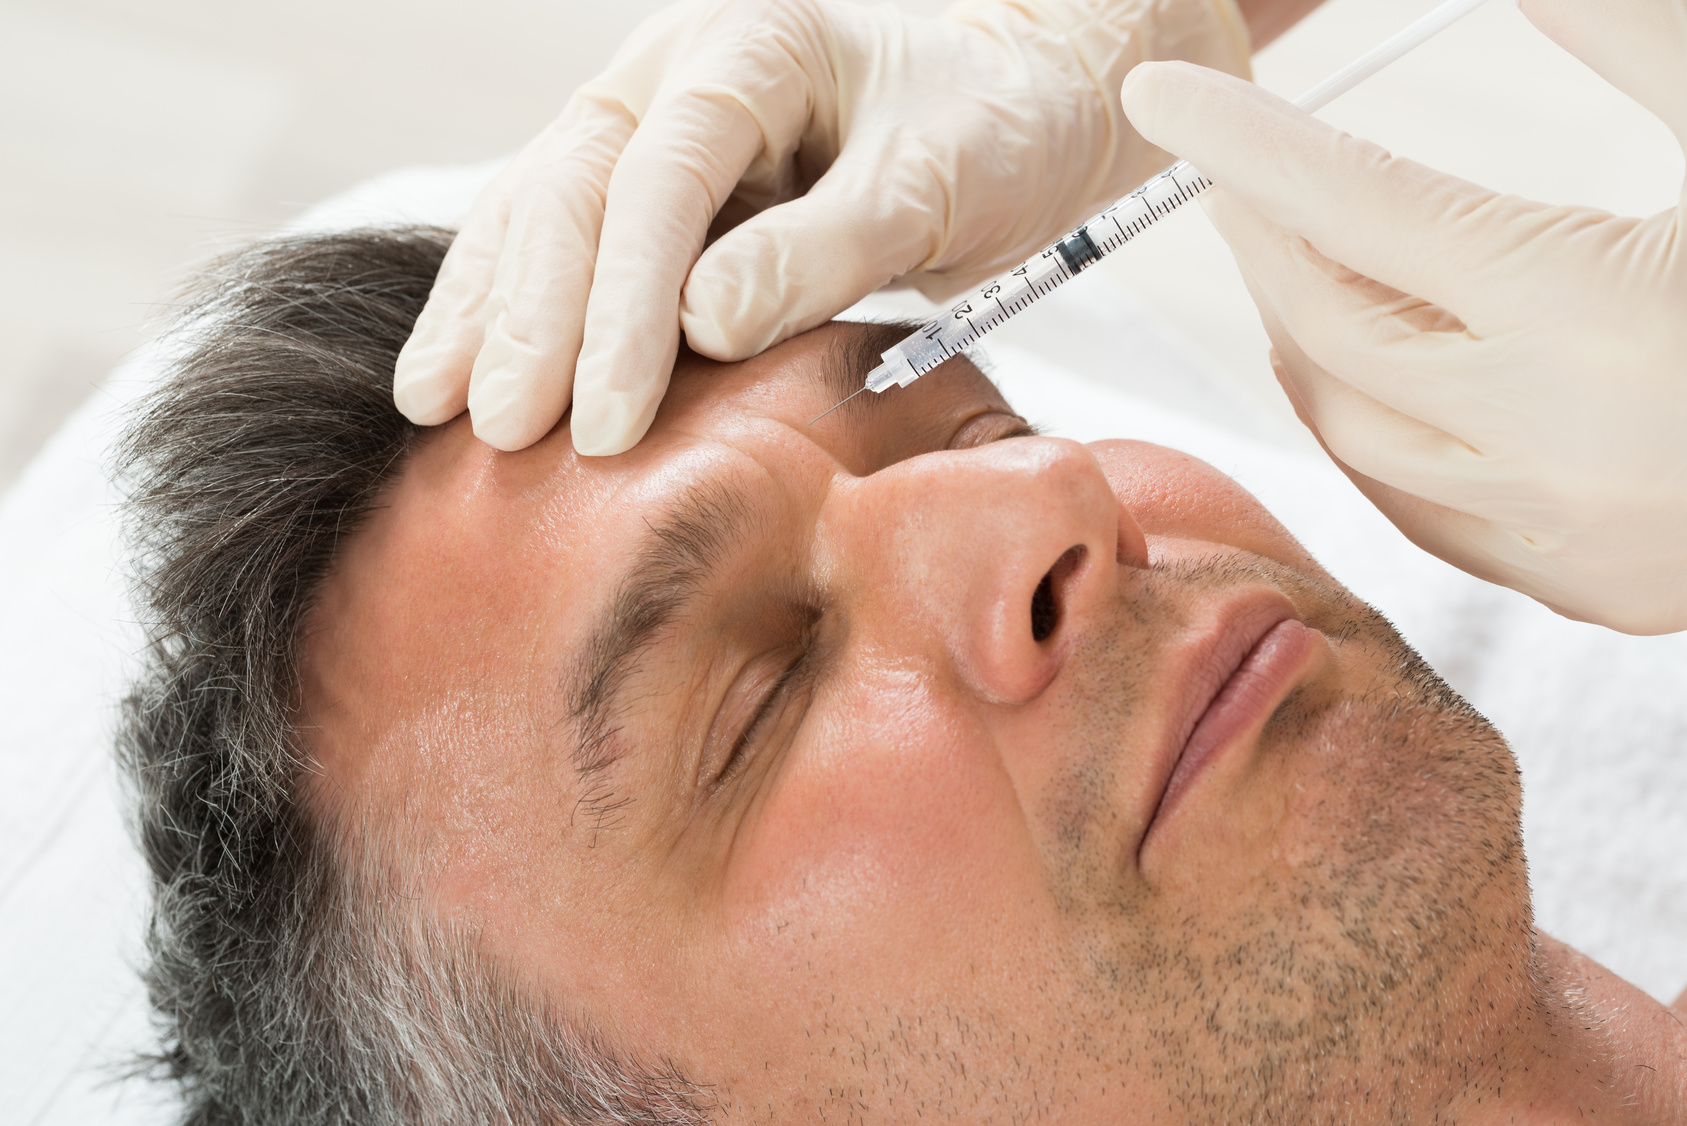 Mature Man Receiving Cosmetic Injection With Syringe In Clinic